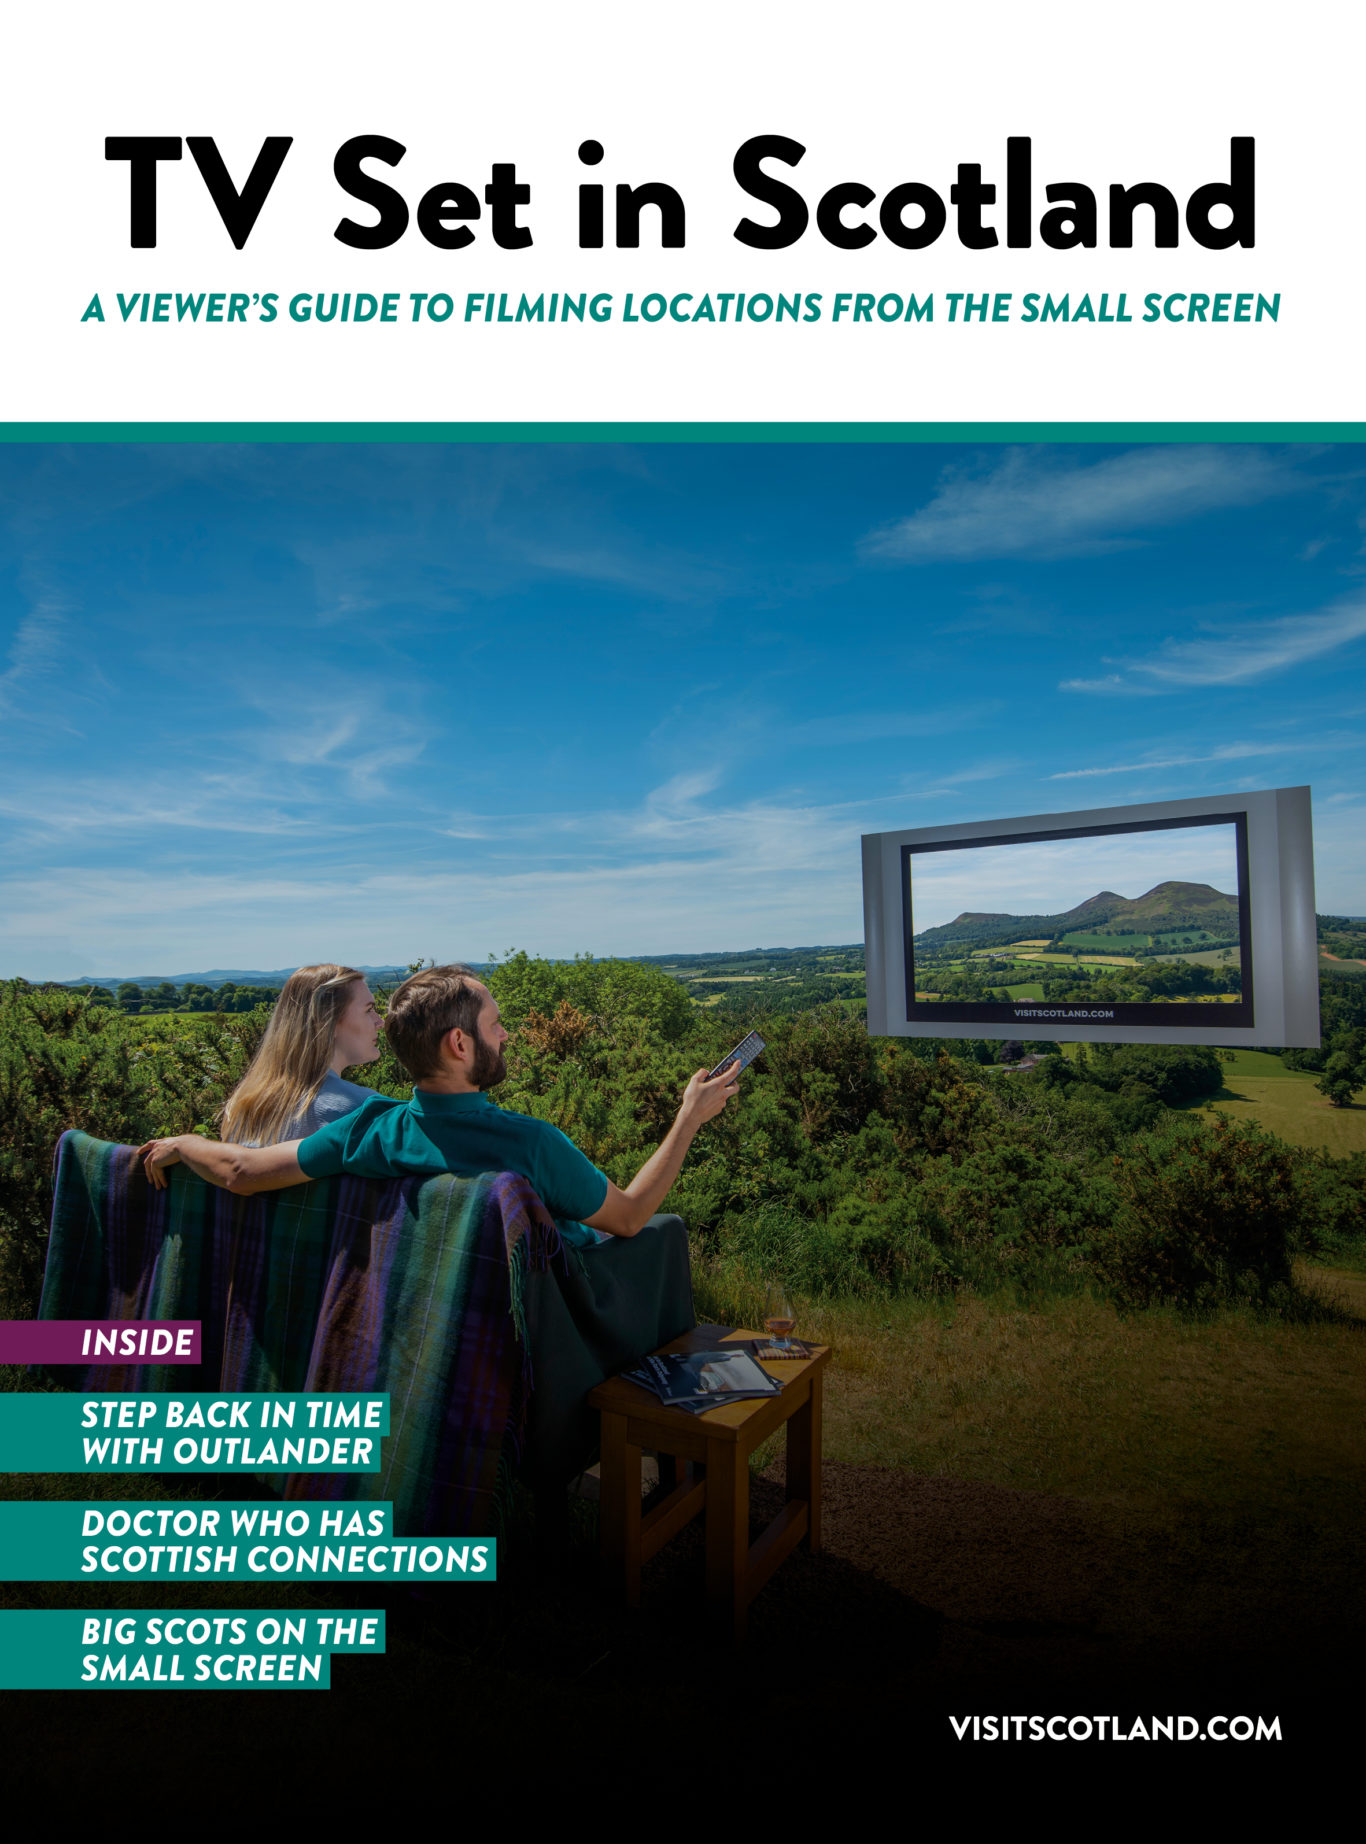 The guide will be in attractions and available to download (VisitScotland/PA)